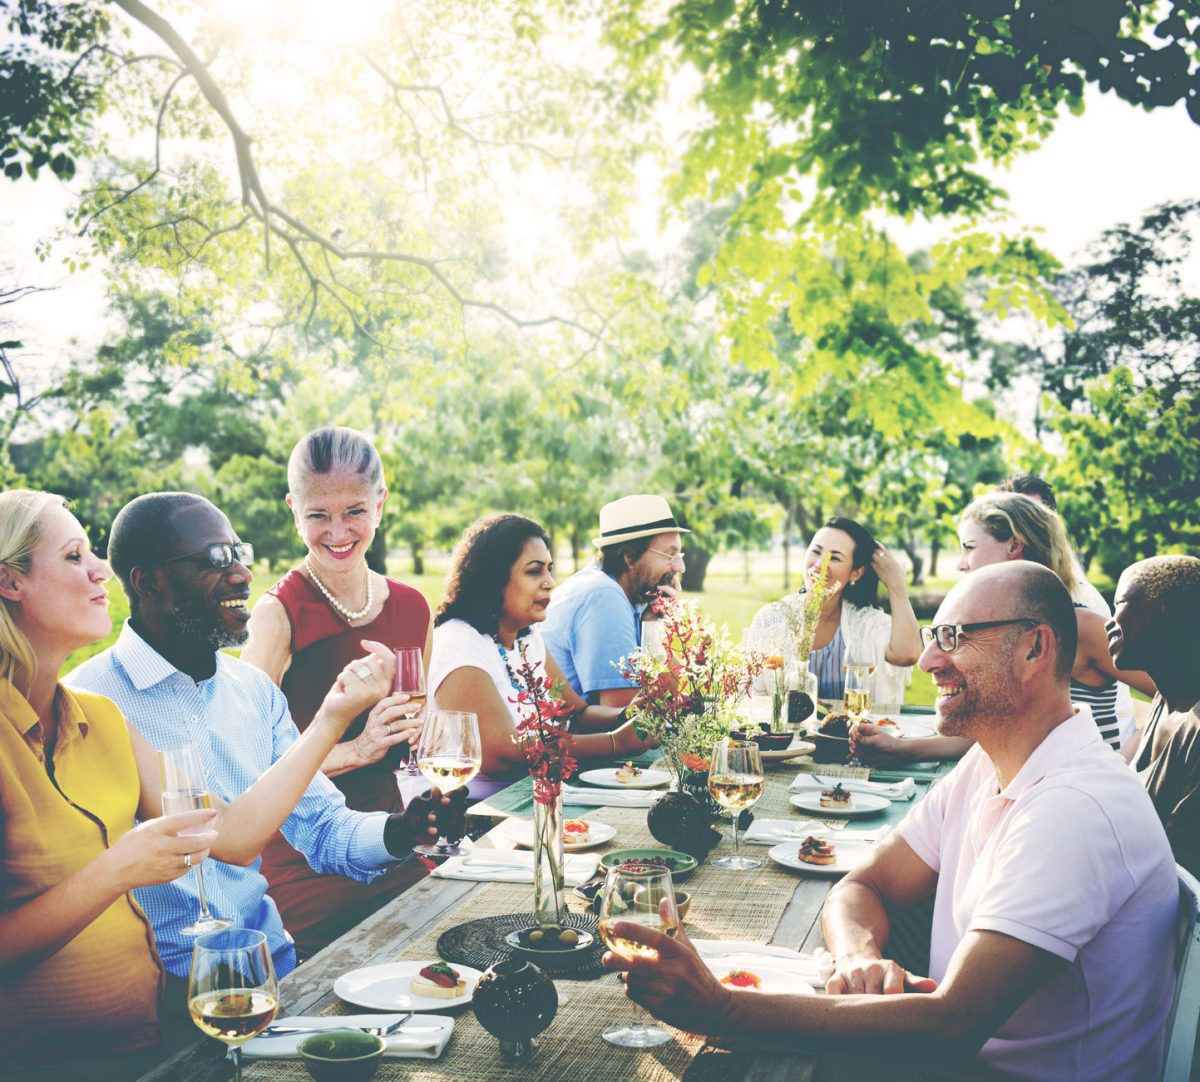 Top 5 Tips for Hosting Healthy Parties